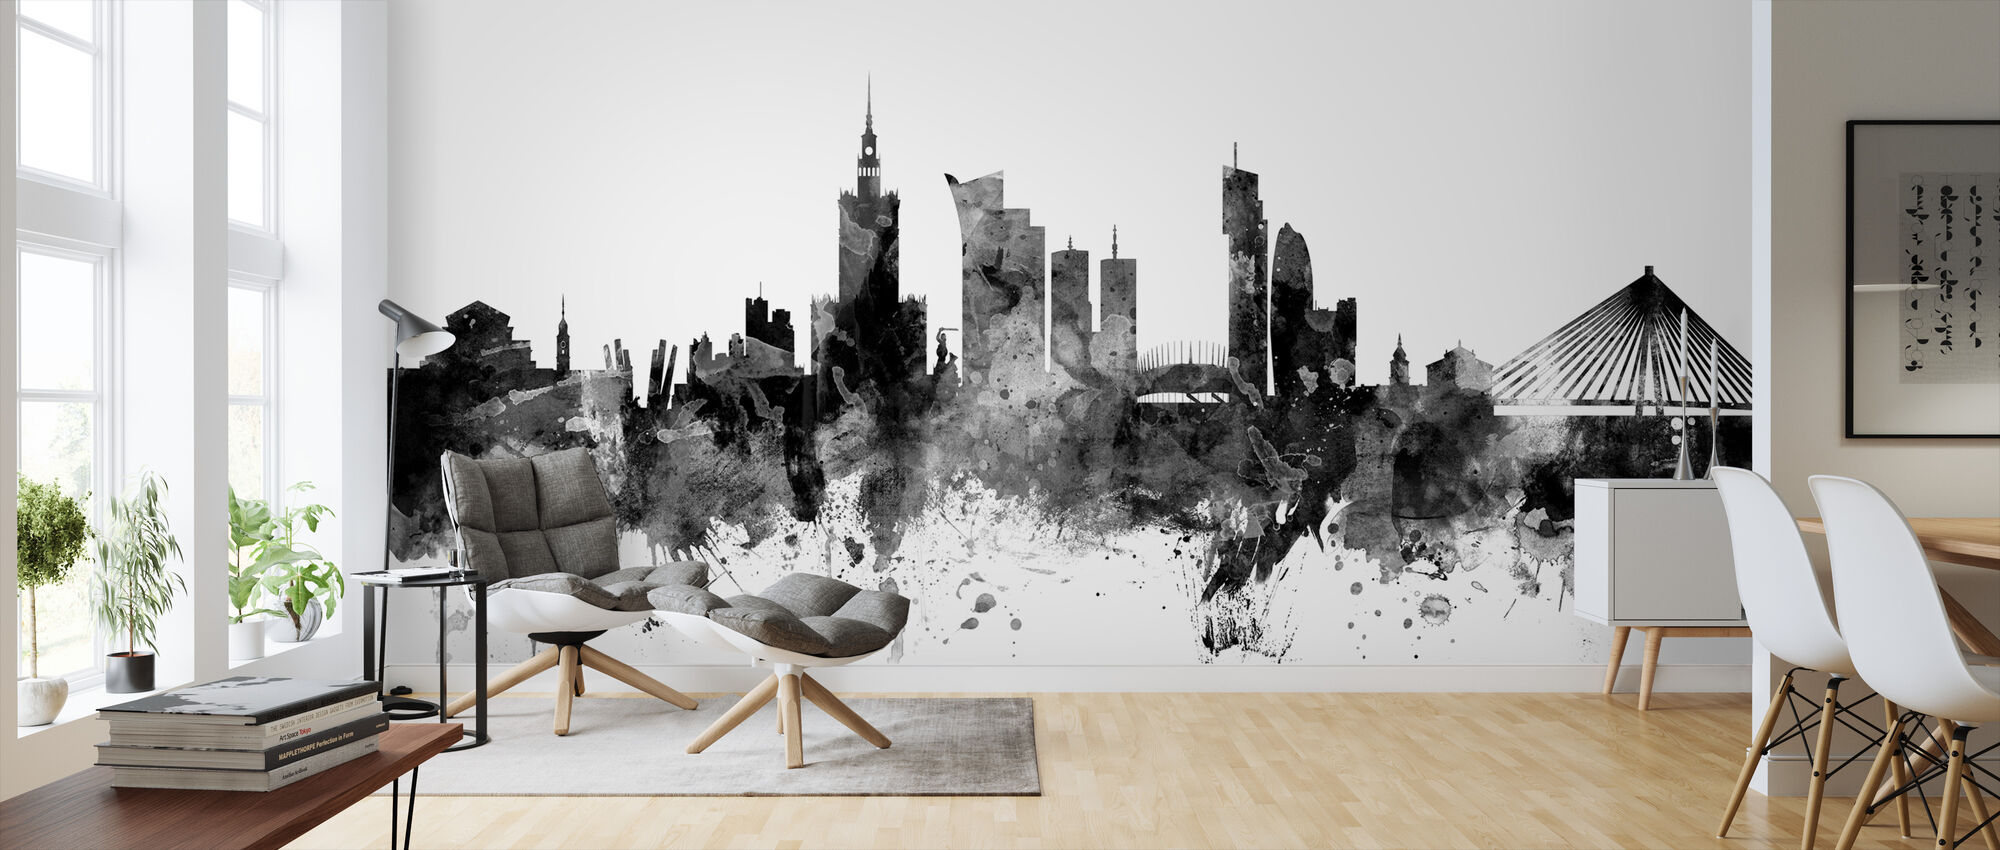 Warsaw Skyline Black - Wallpaper - Living Room